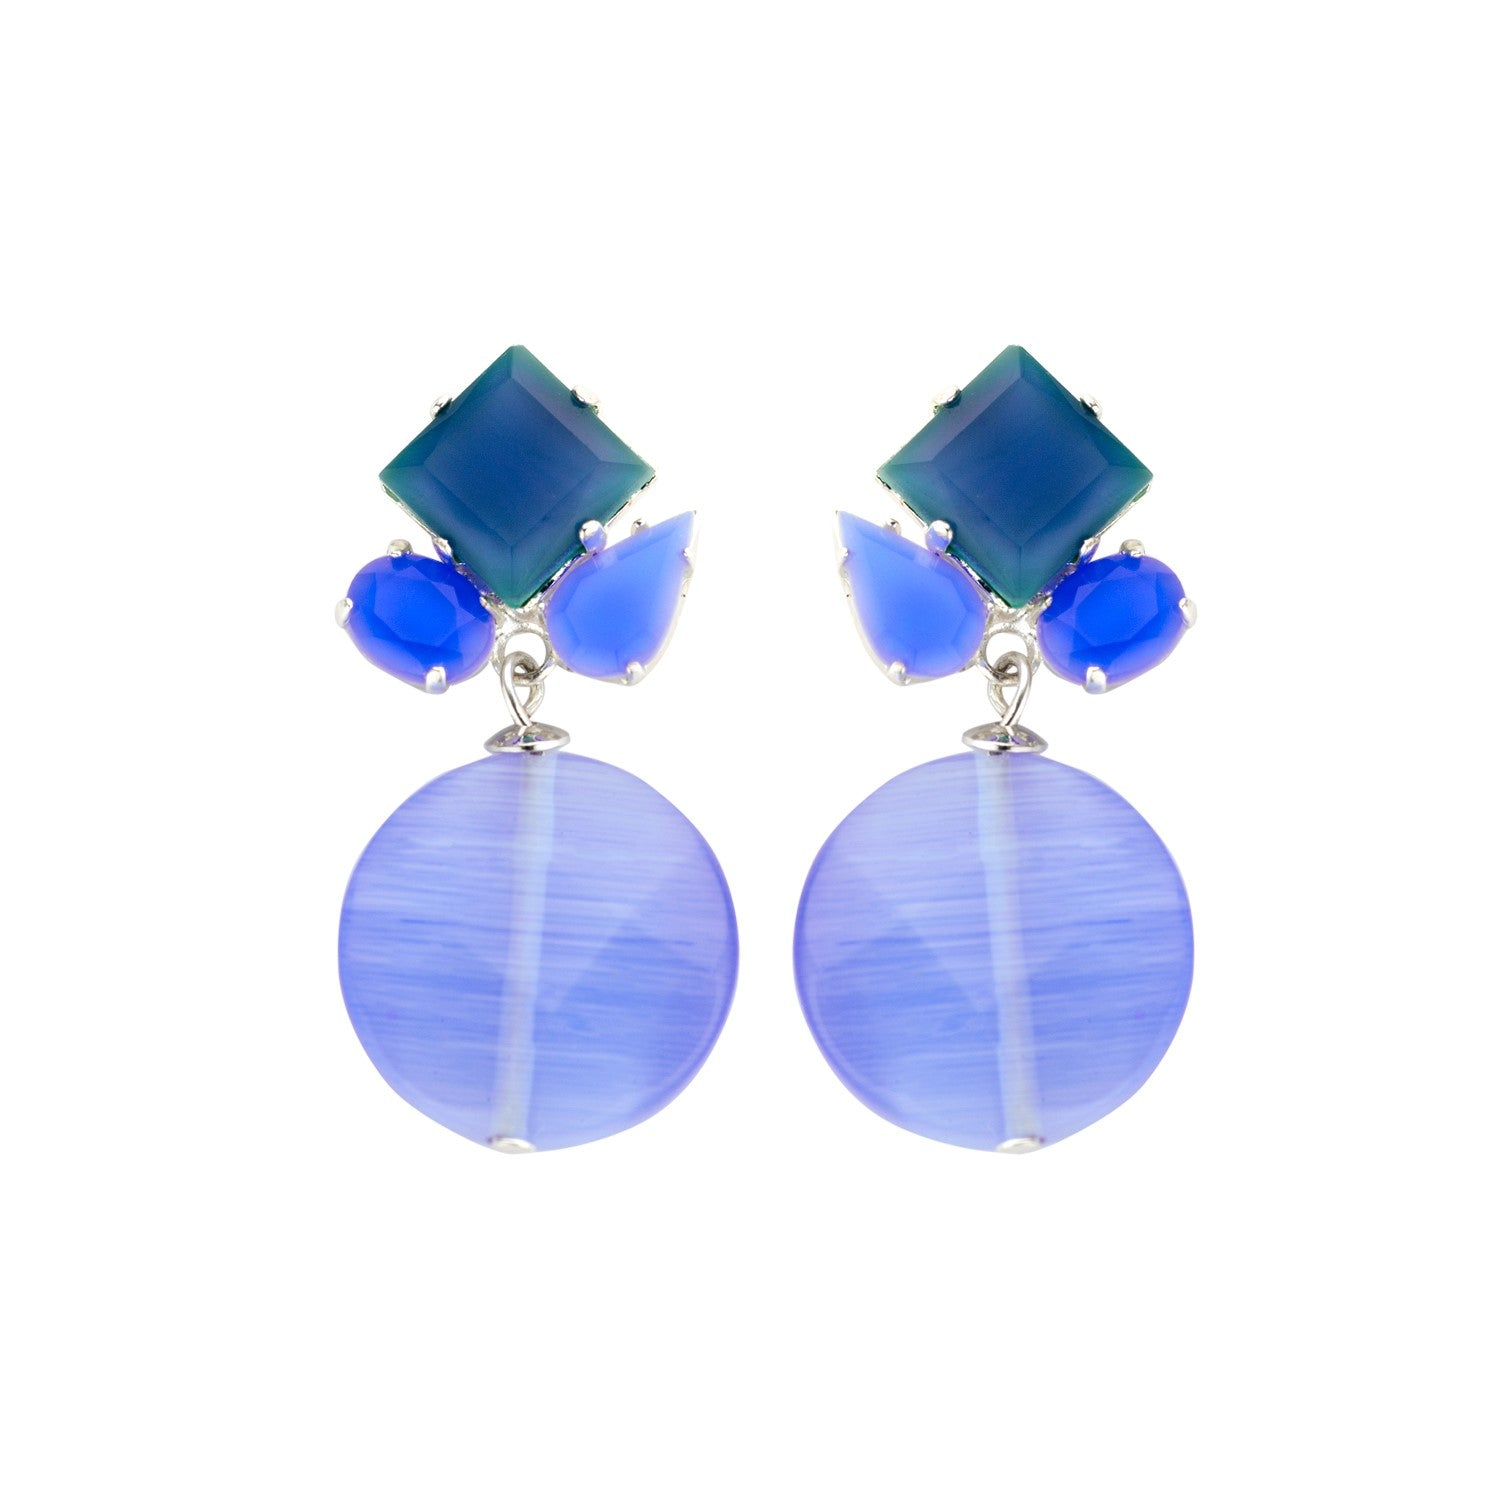 Square mix navy earrings